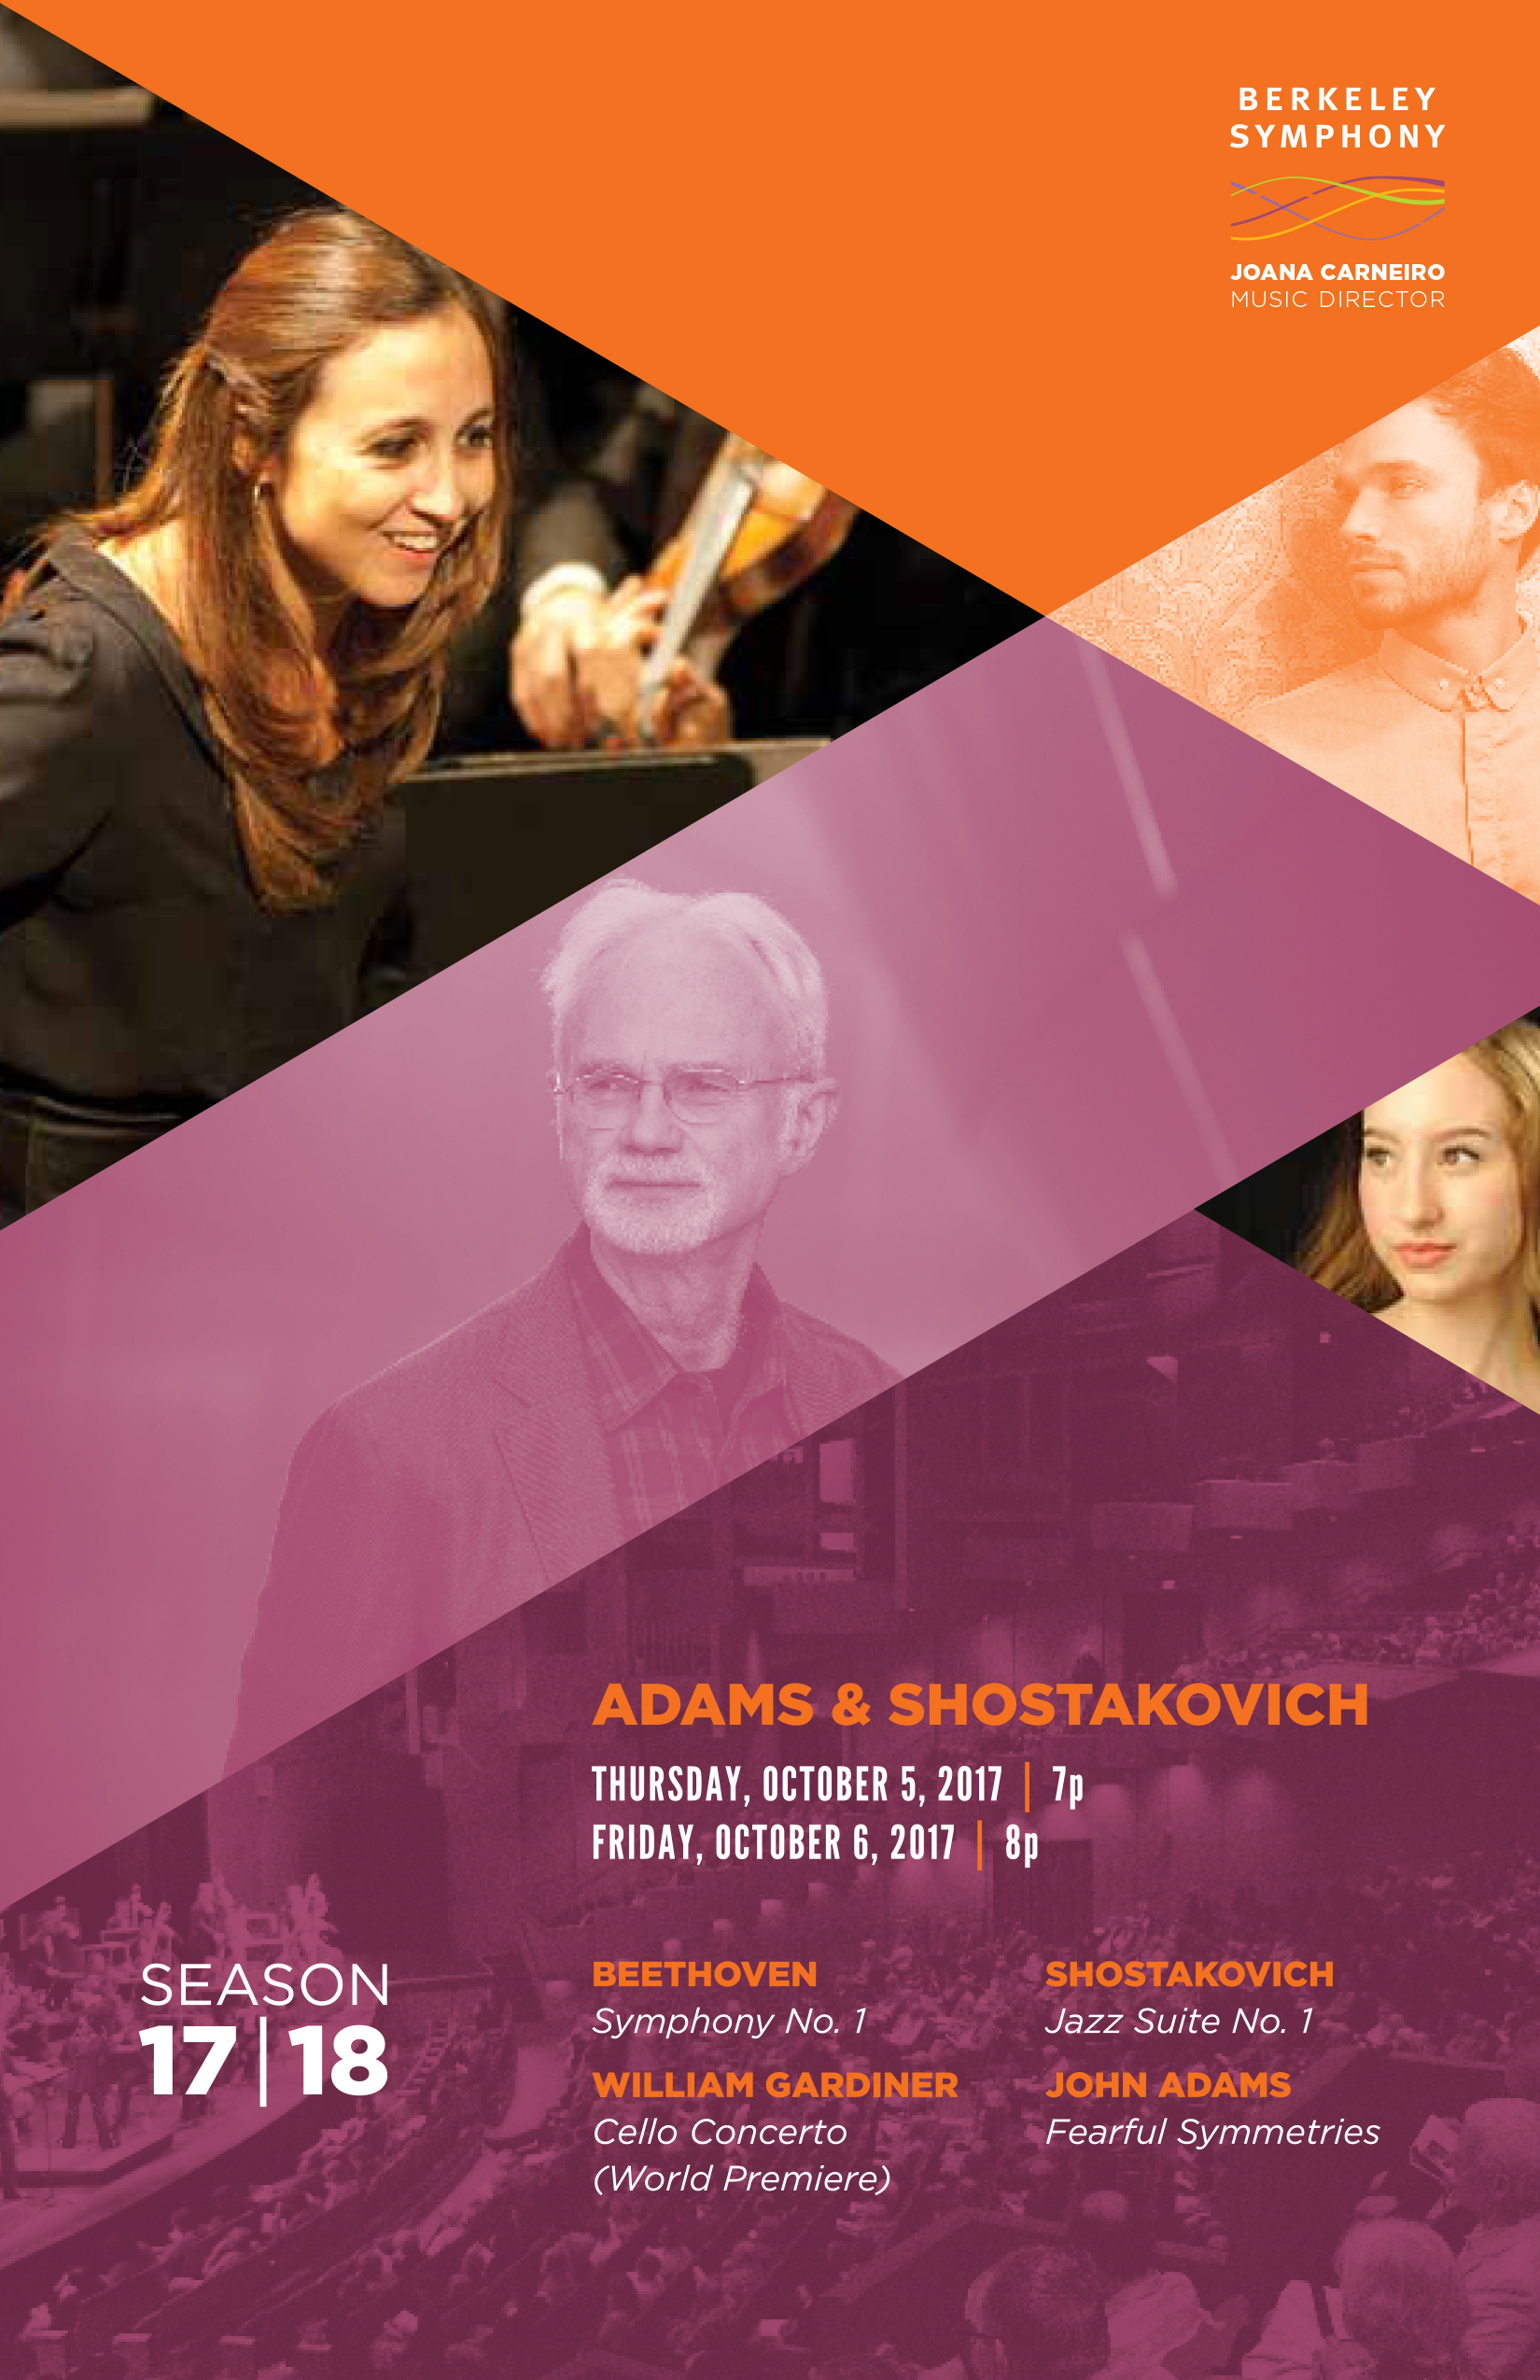 Oct 5&6, 2017 - Adams & Shostakovich